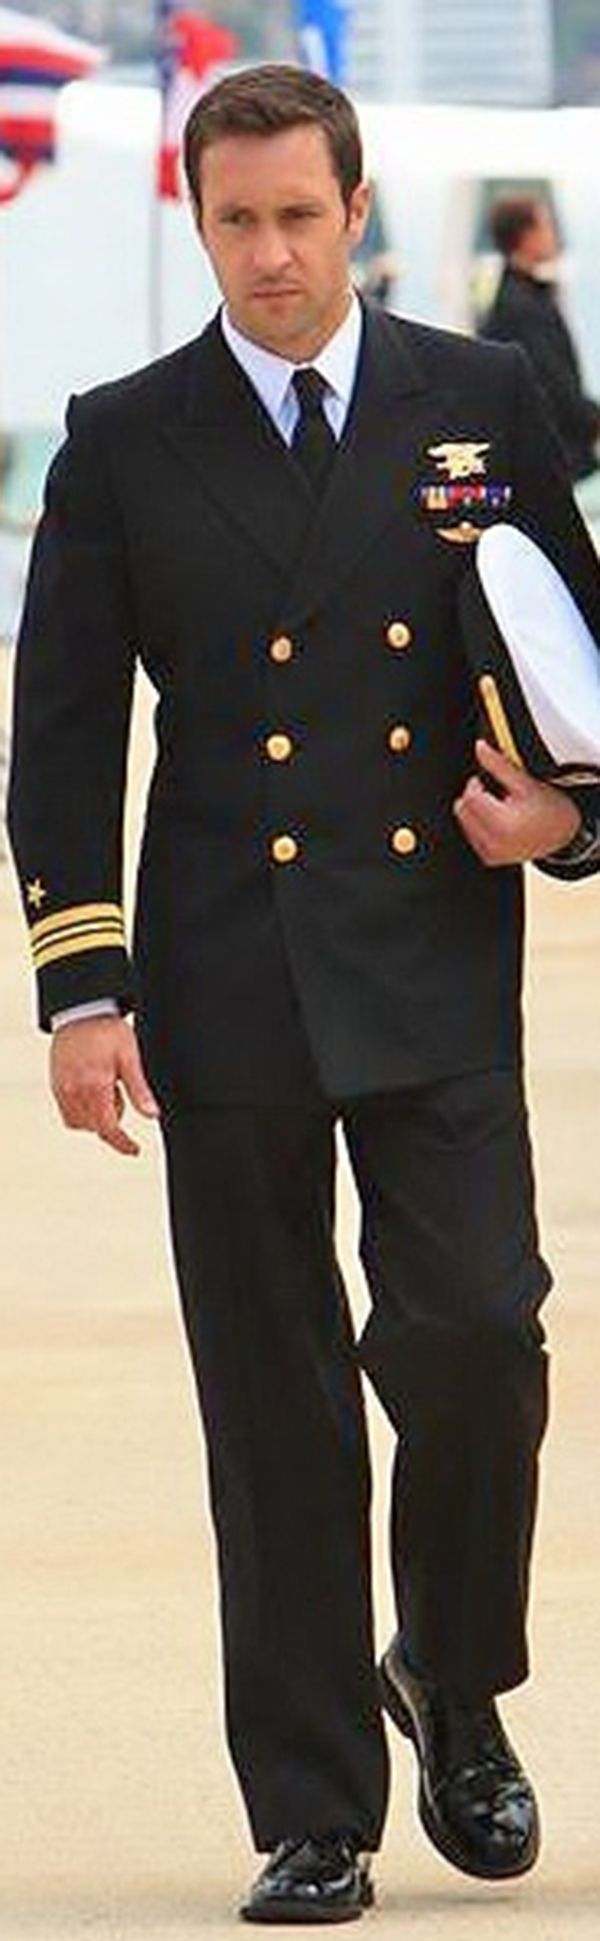 "PERSONAL APPEARANCE. Because it is impossible to provide examples of every appropriate or unacceptable hairstyle or of ""conservative"" or ""eccentric"" grooming and personal appearance, the good judgment of leaders at all levels is key to enforcement of Navy grooming policy. Therefore, hair/grooming/personal appearance while in uniform shall present a neat, professional appearance."